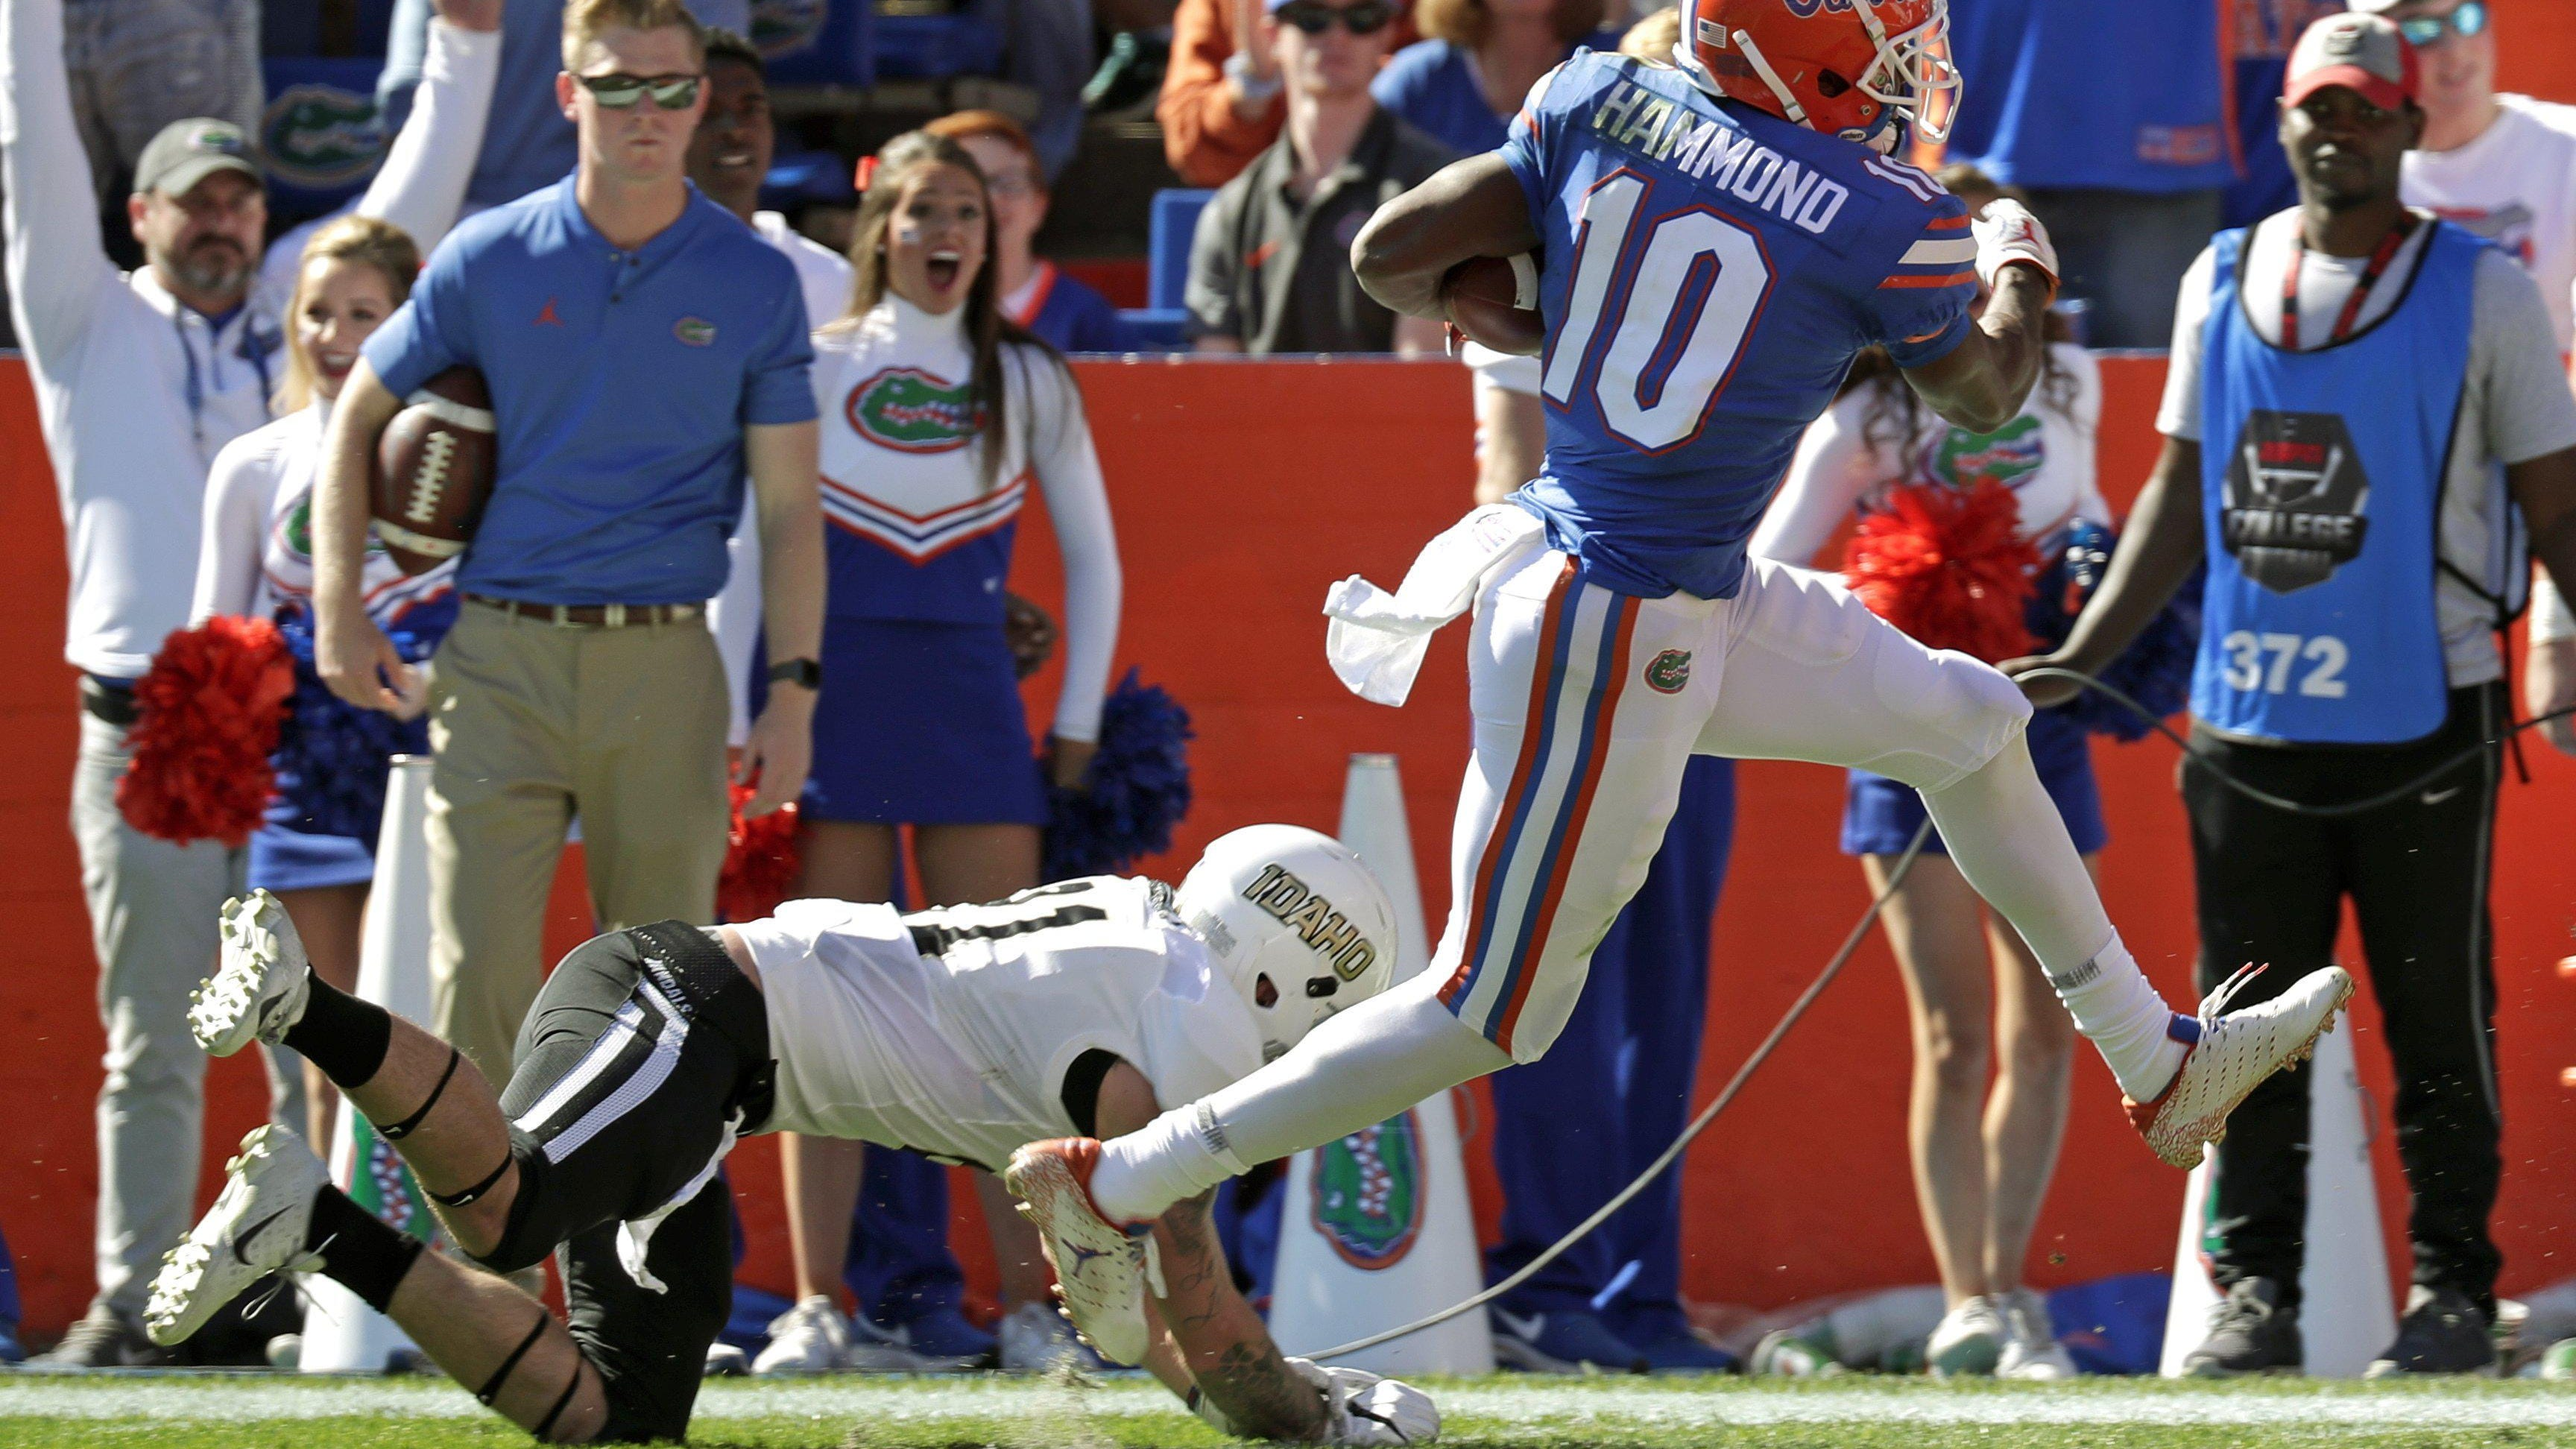 Uf S Josh Hammond Among Undrafted Free Agents To Reach Deal With Jaguars